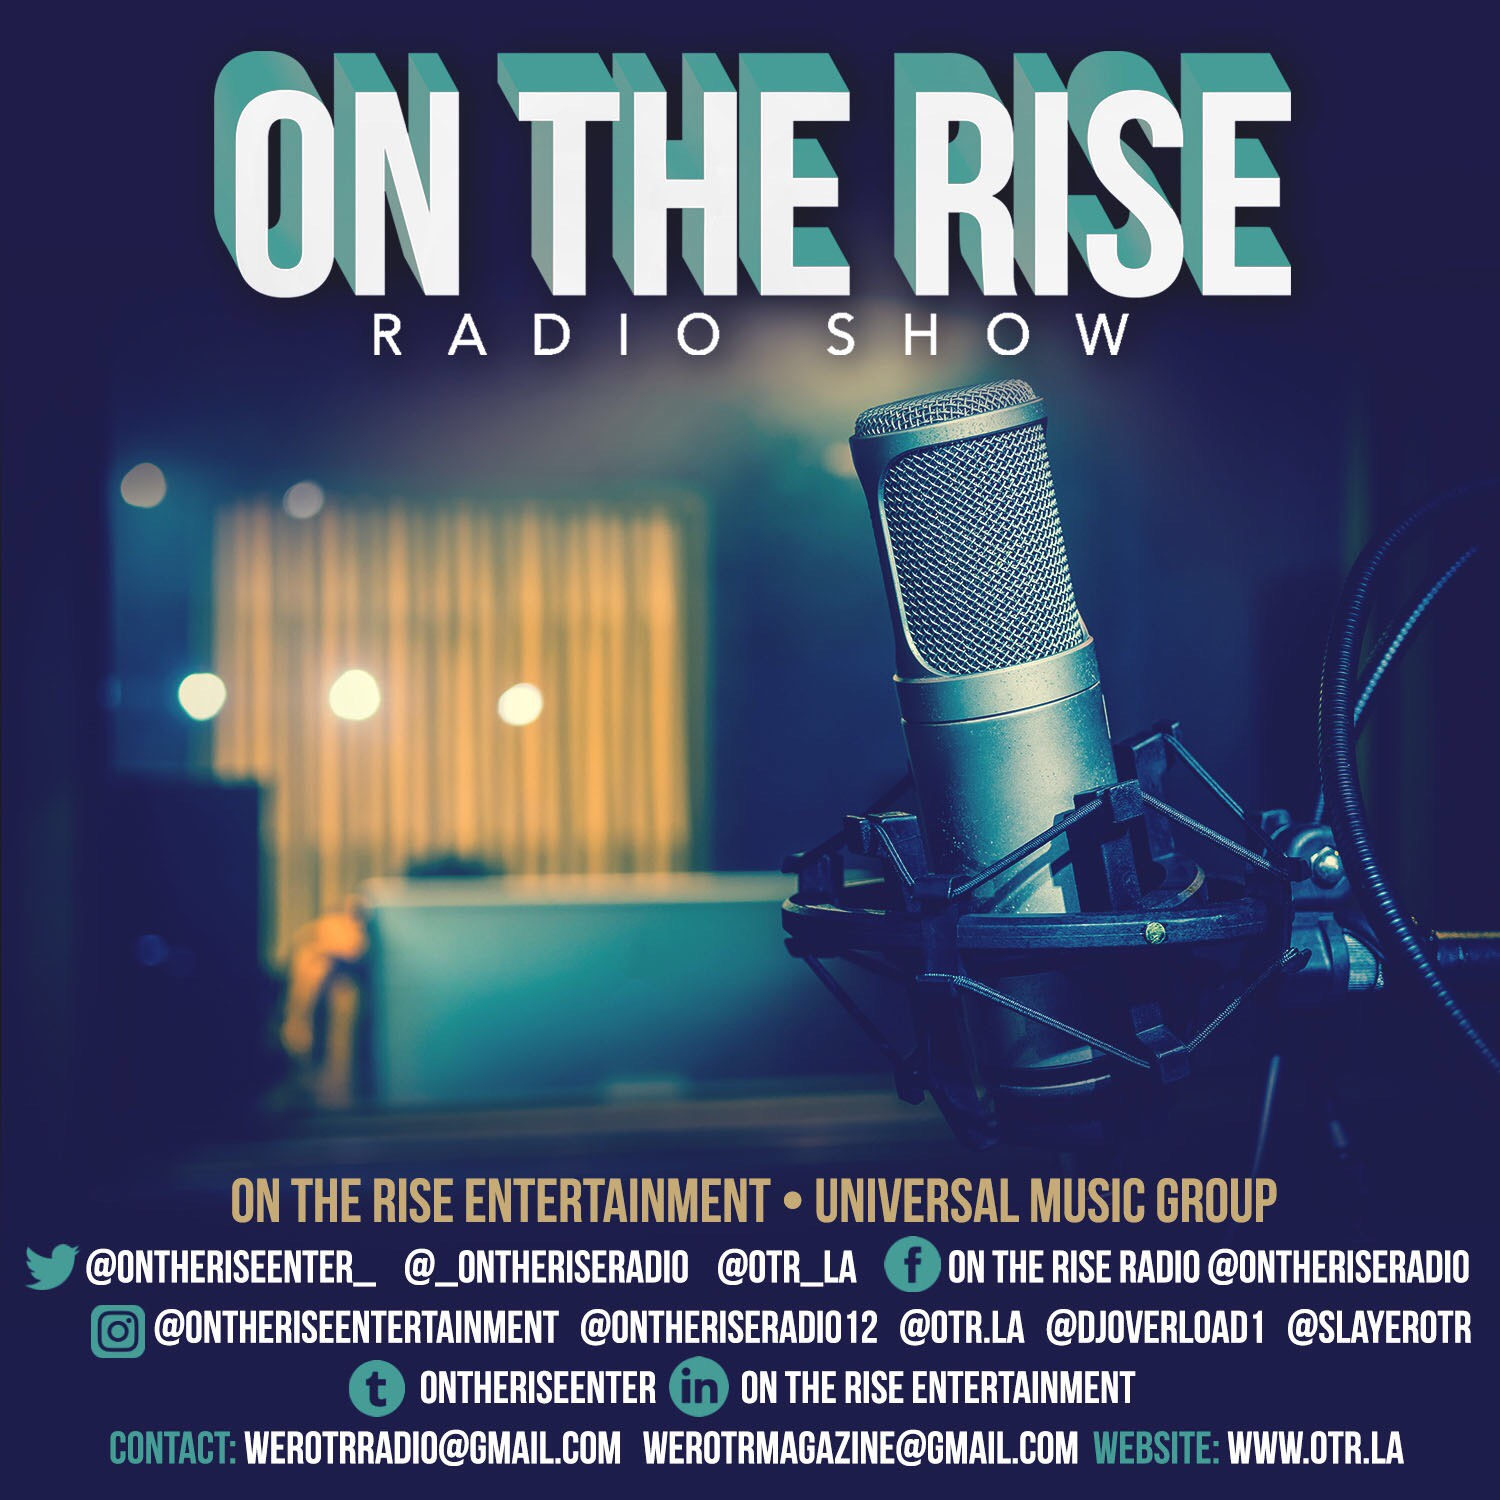 """ON THE RISE ENTERTAINMENT - WELCOME TO """"ON THE RISE ENTERTAINMENT"""" OUR GOAL IS TO GROW OUR BRAND MUSICALLY THROUGH PUBLICATION AND PROMOTIONS IN THE MUSIC GAME WITH THE OPPURTUNITY IN A RECORD LABEL WITH THE """"UNIVERSAL MUSIC GROUP"""" TO BRING MUSIC LOVERS TOGETHER WORLDWIDE. LELAND SHOGUN WHITE""""HOTTEST INTERNET RADIO STATION"""""""